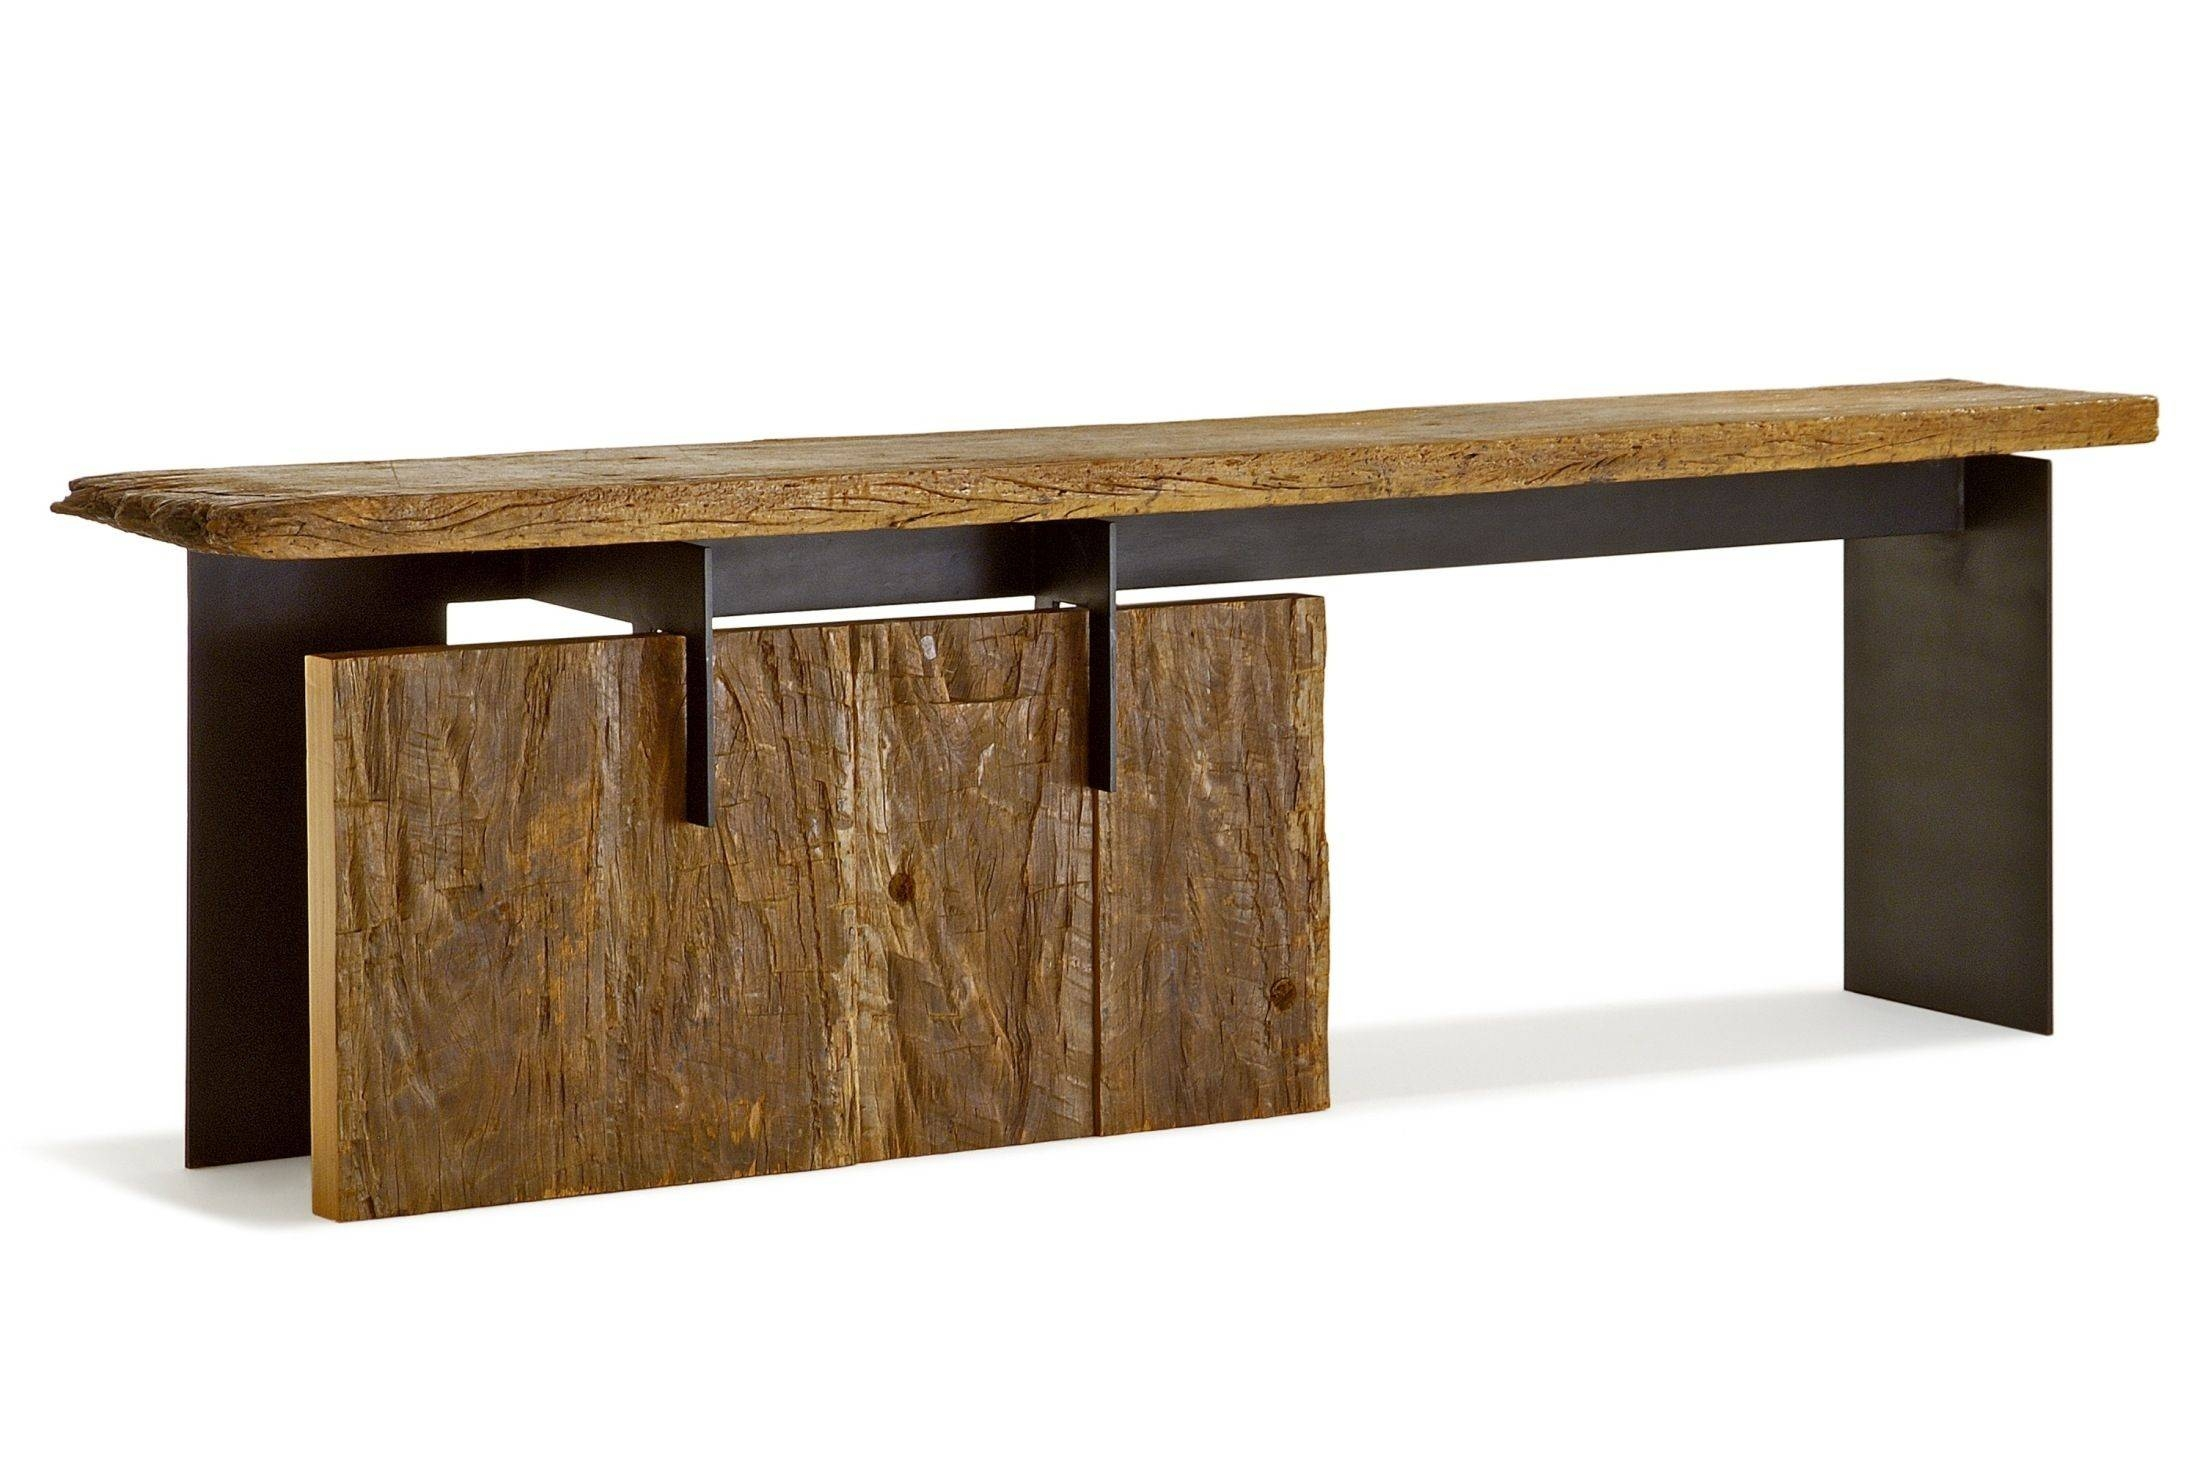 Contemporary Sideboard Table / Wooden / Rectangular / In Reclaimed within Metal Sideboard Furniture (Image 10 of 30)